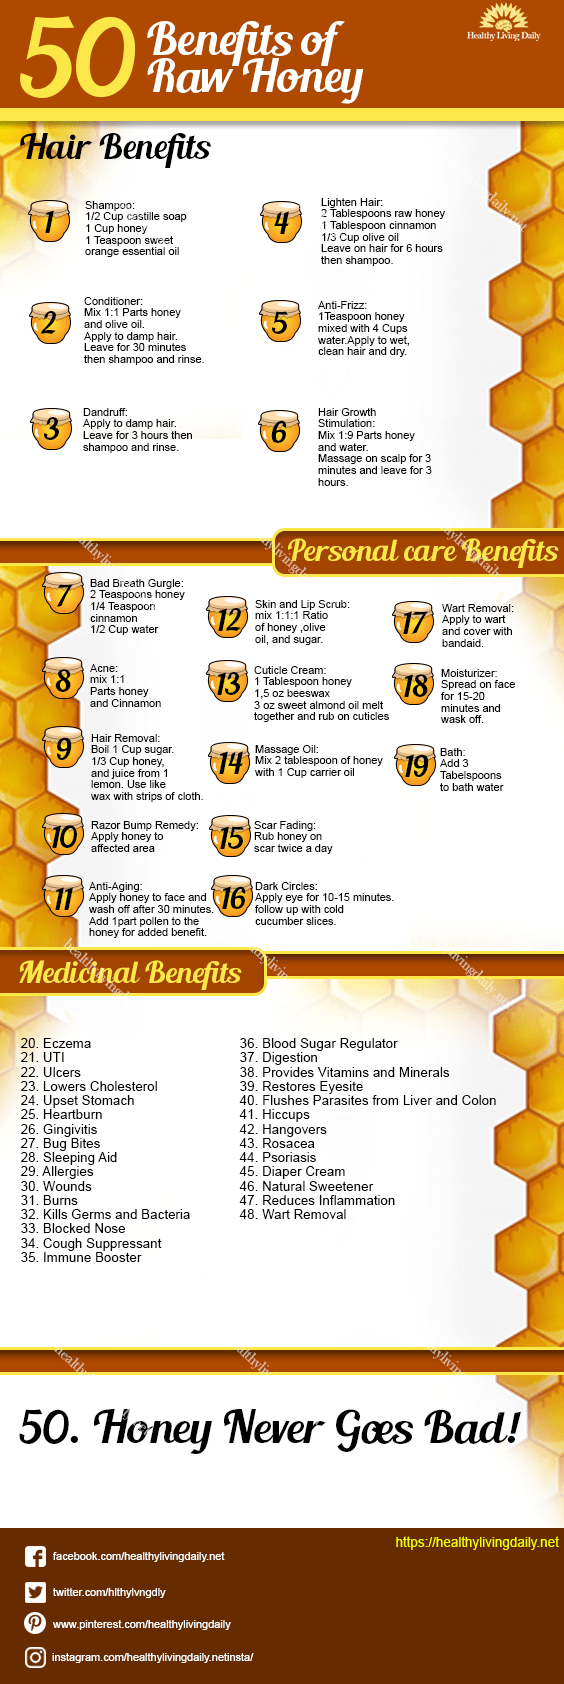 50 Benefits of Raw Honey Infographic